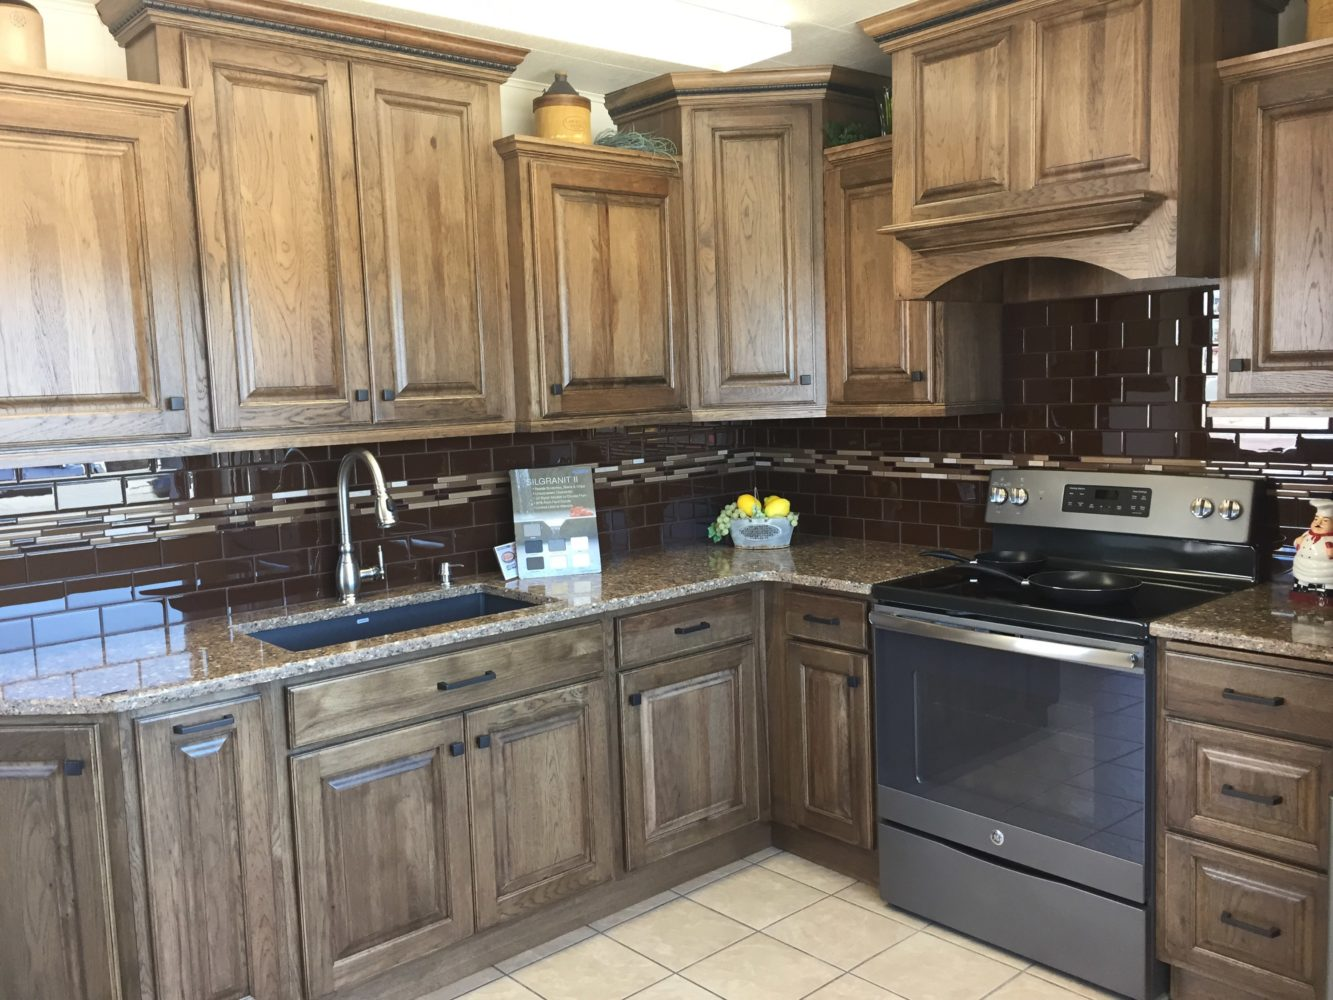 coffee color kitchen cabinets www ninja com tawny with quartz countertop - galleries ...